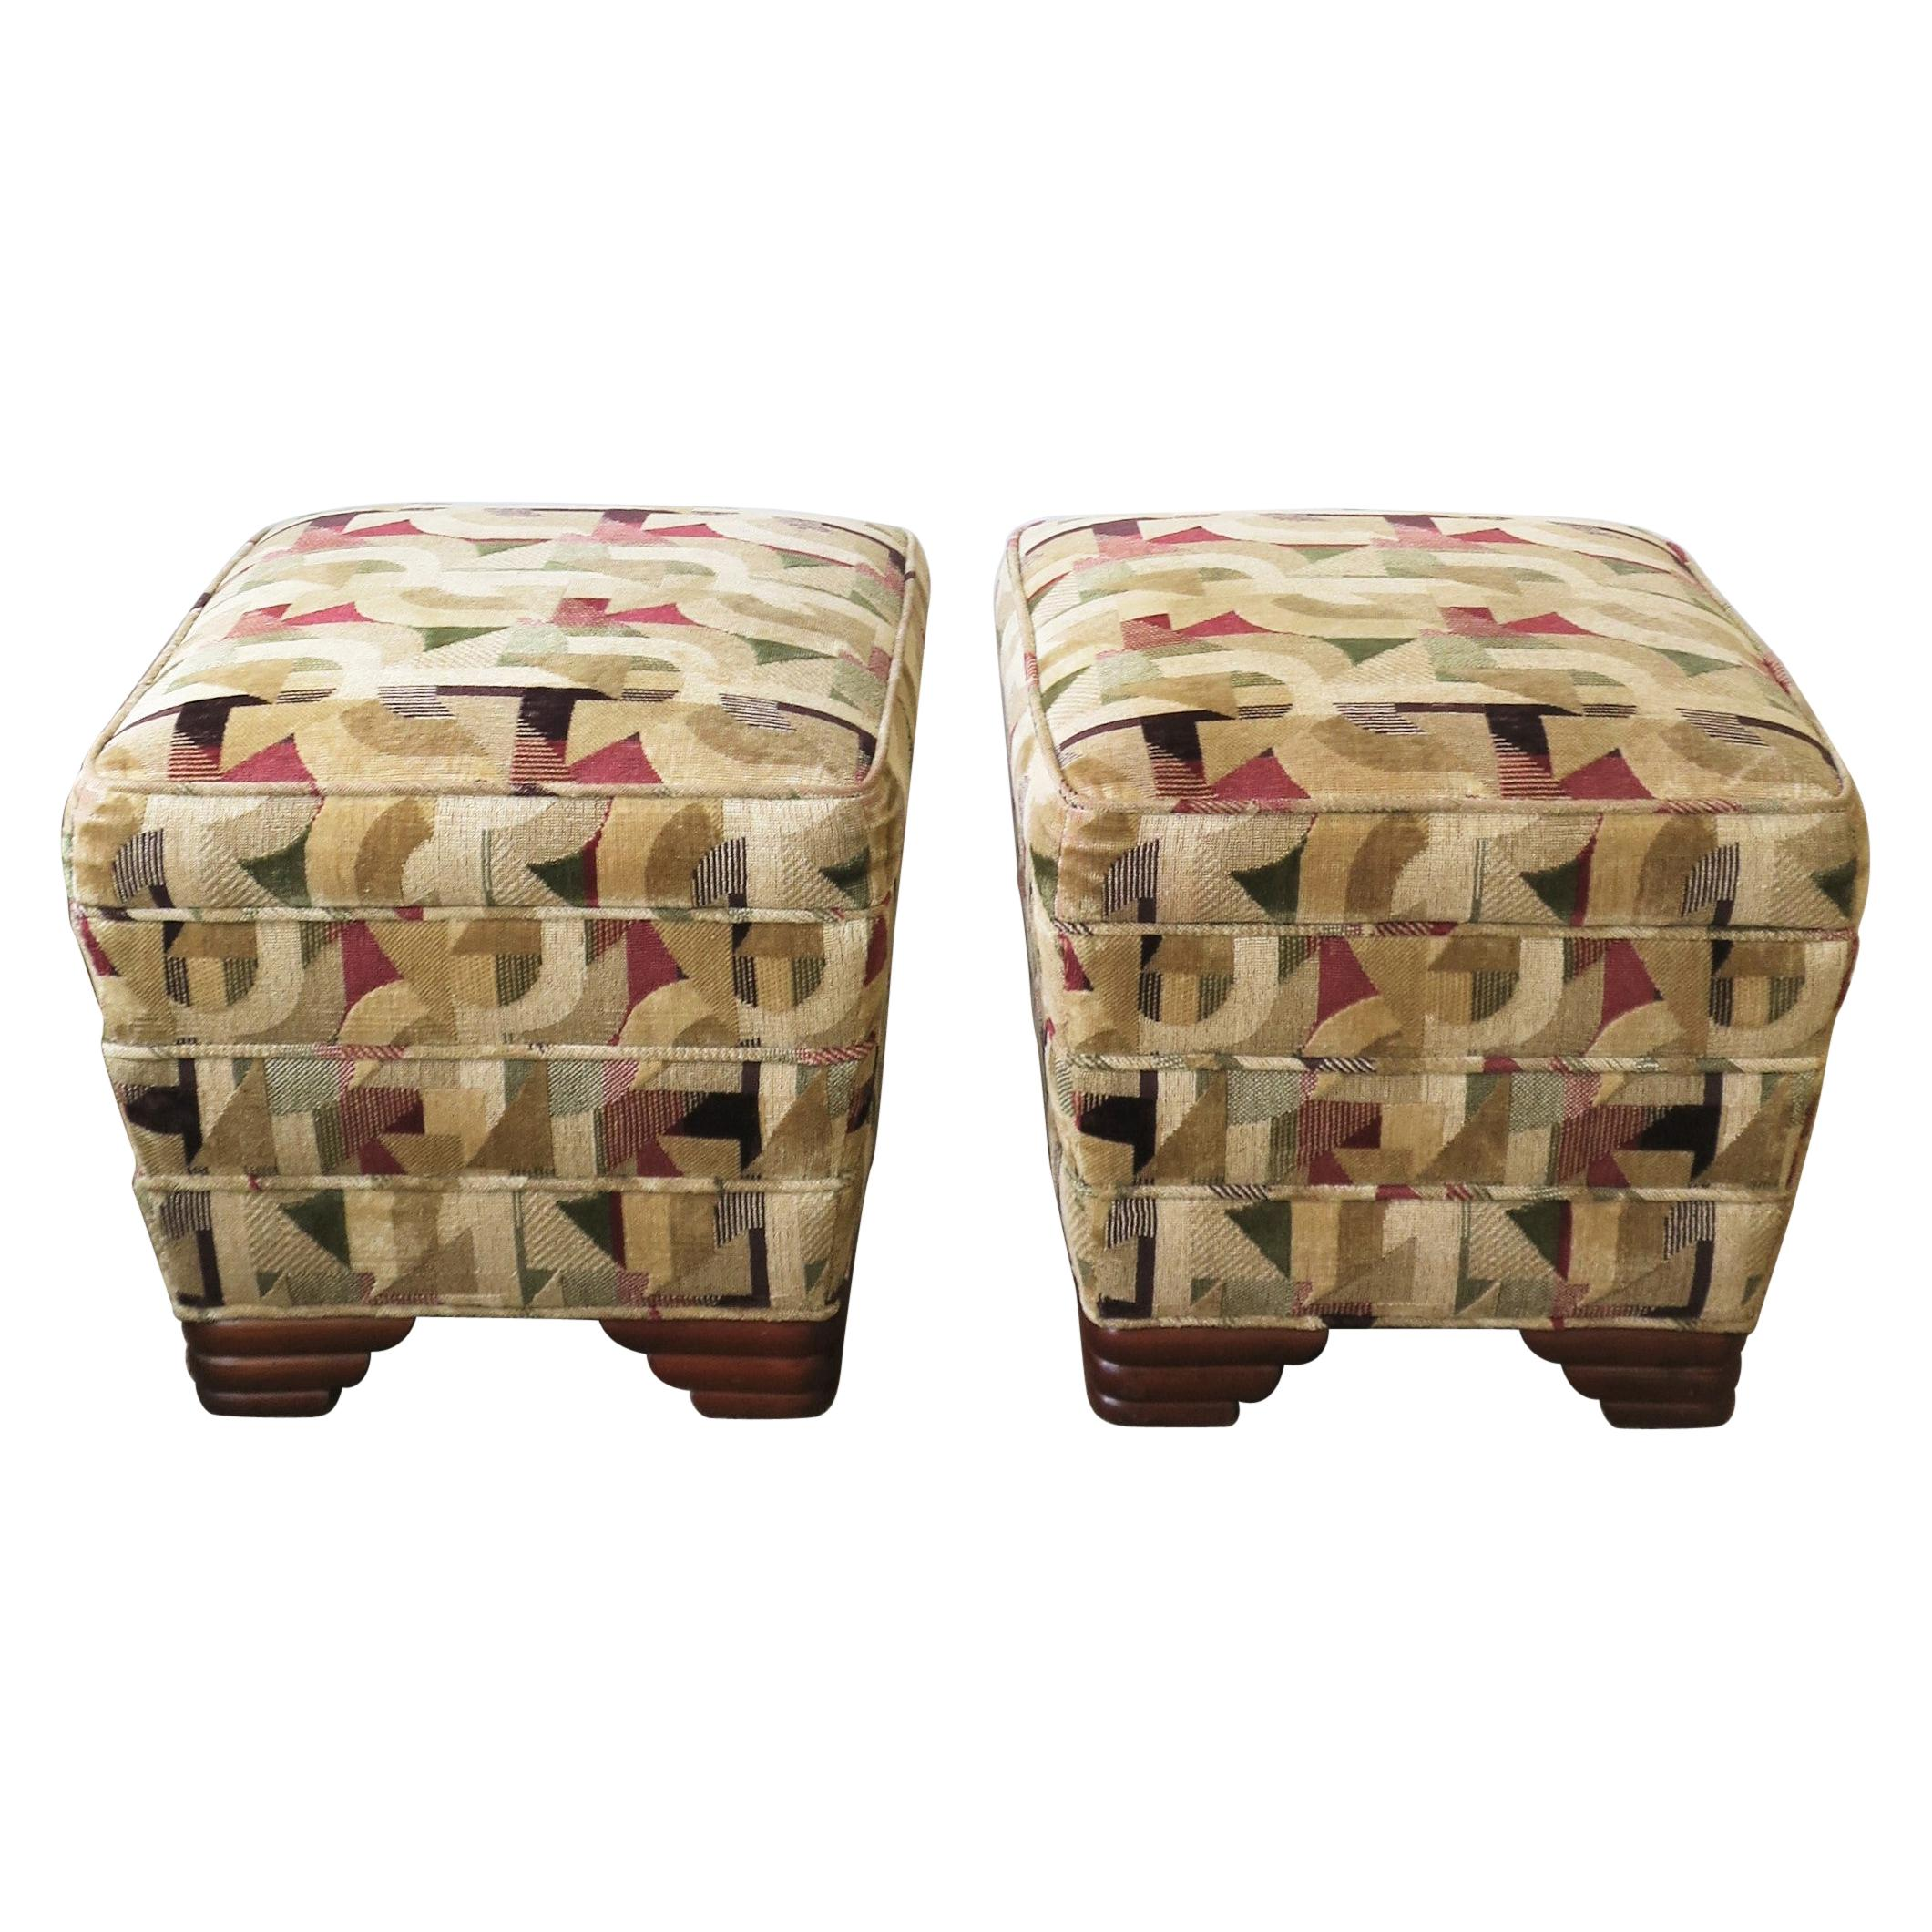 Art Deco Upholstered Stools or Benches, Pair